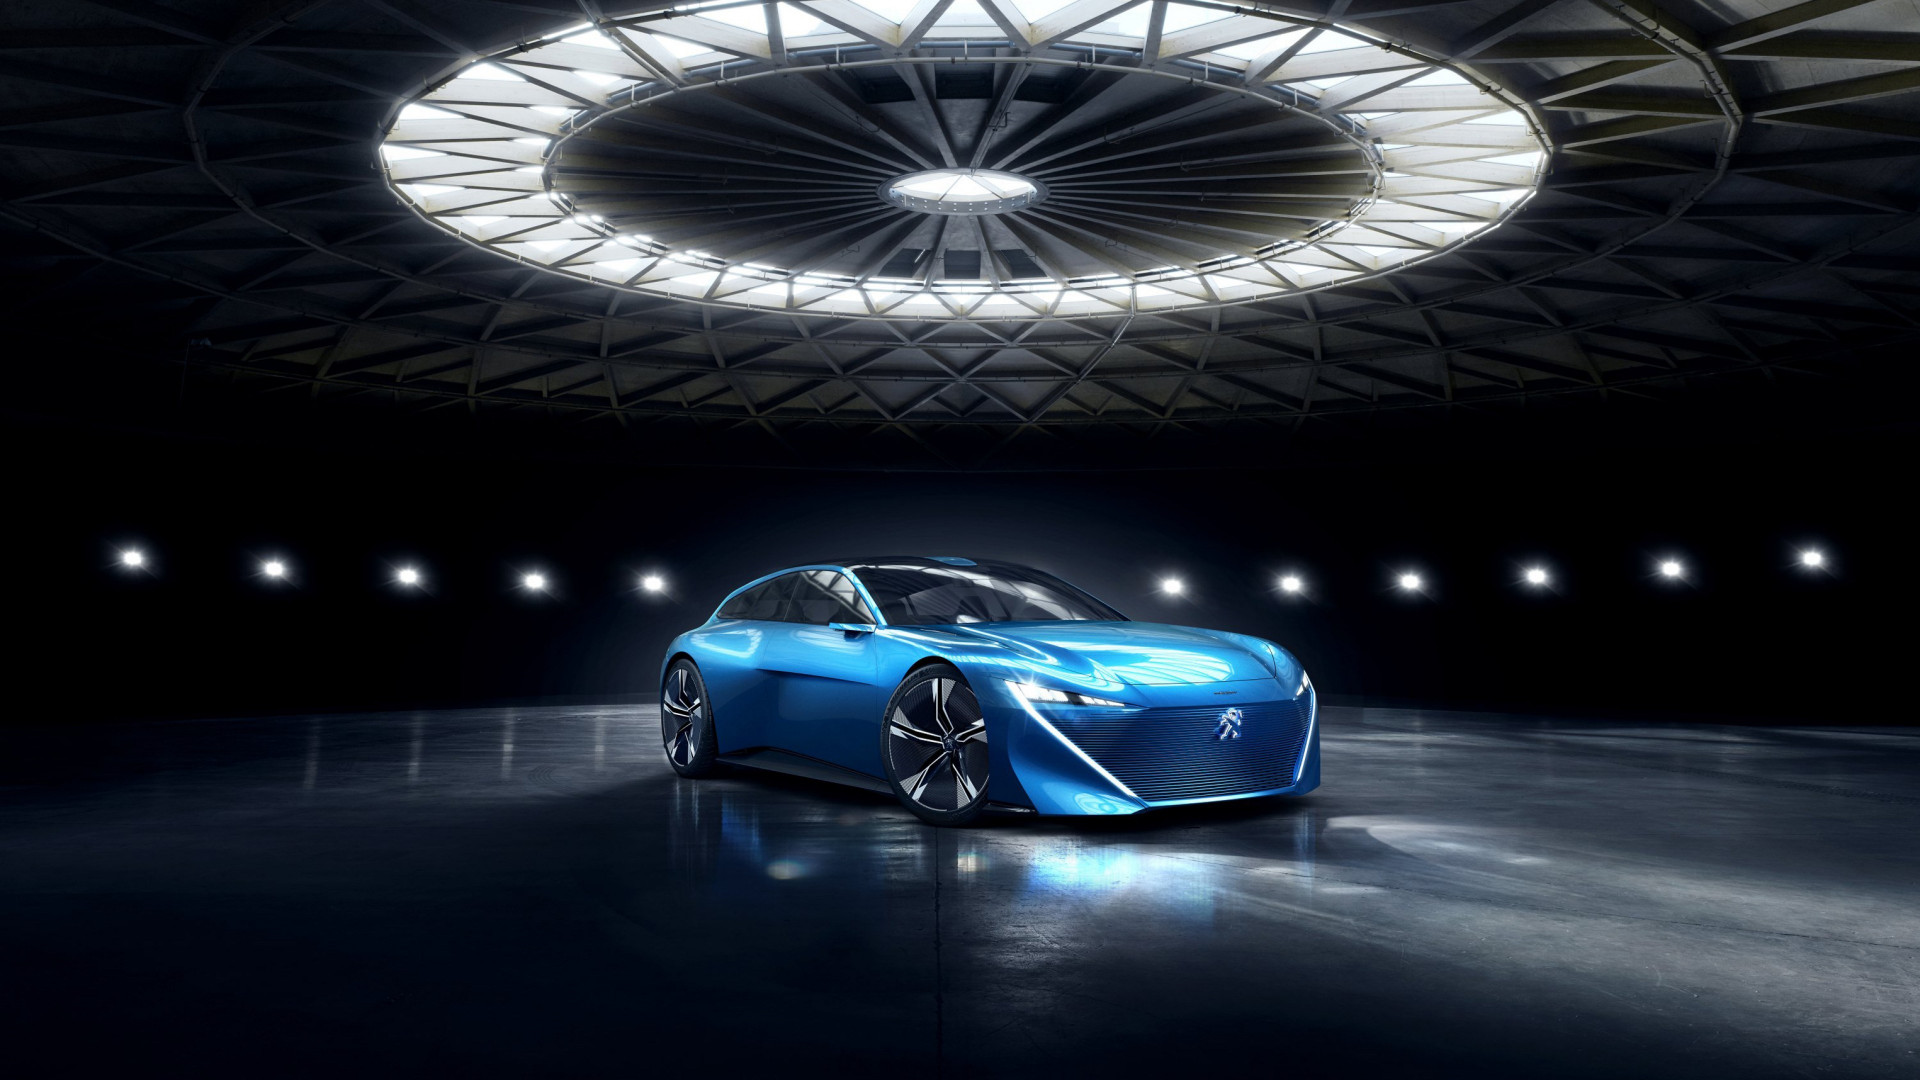 Peugeot Instinct | 1920x1080 wallpaper